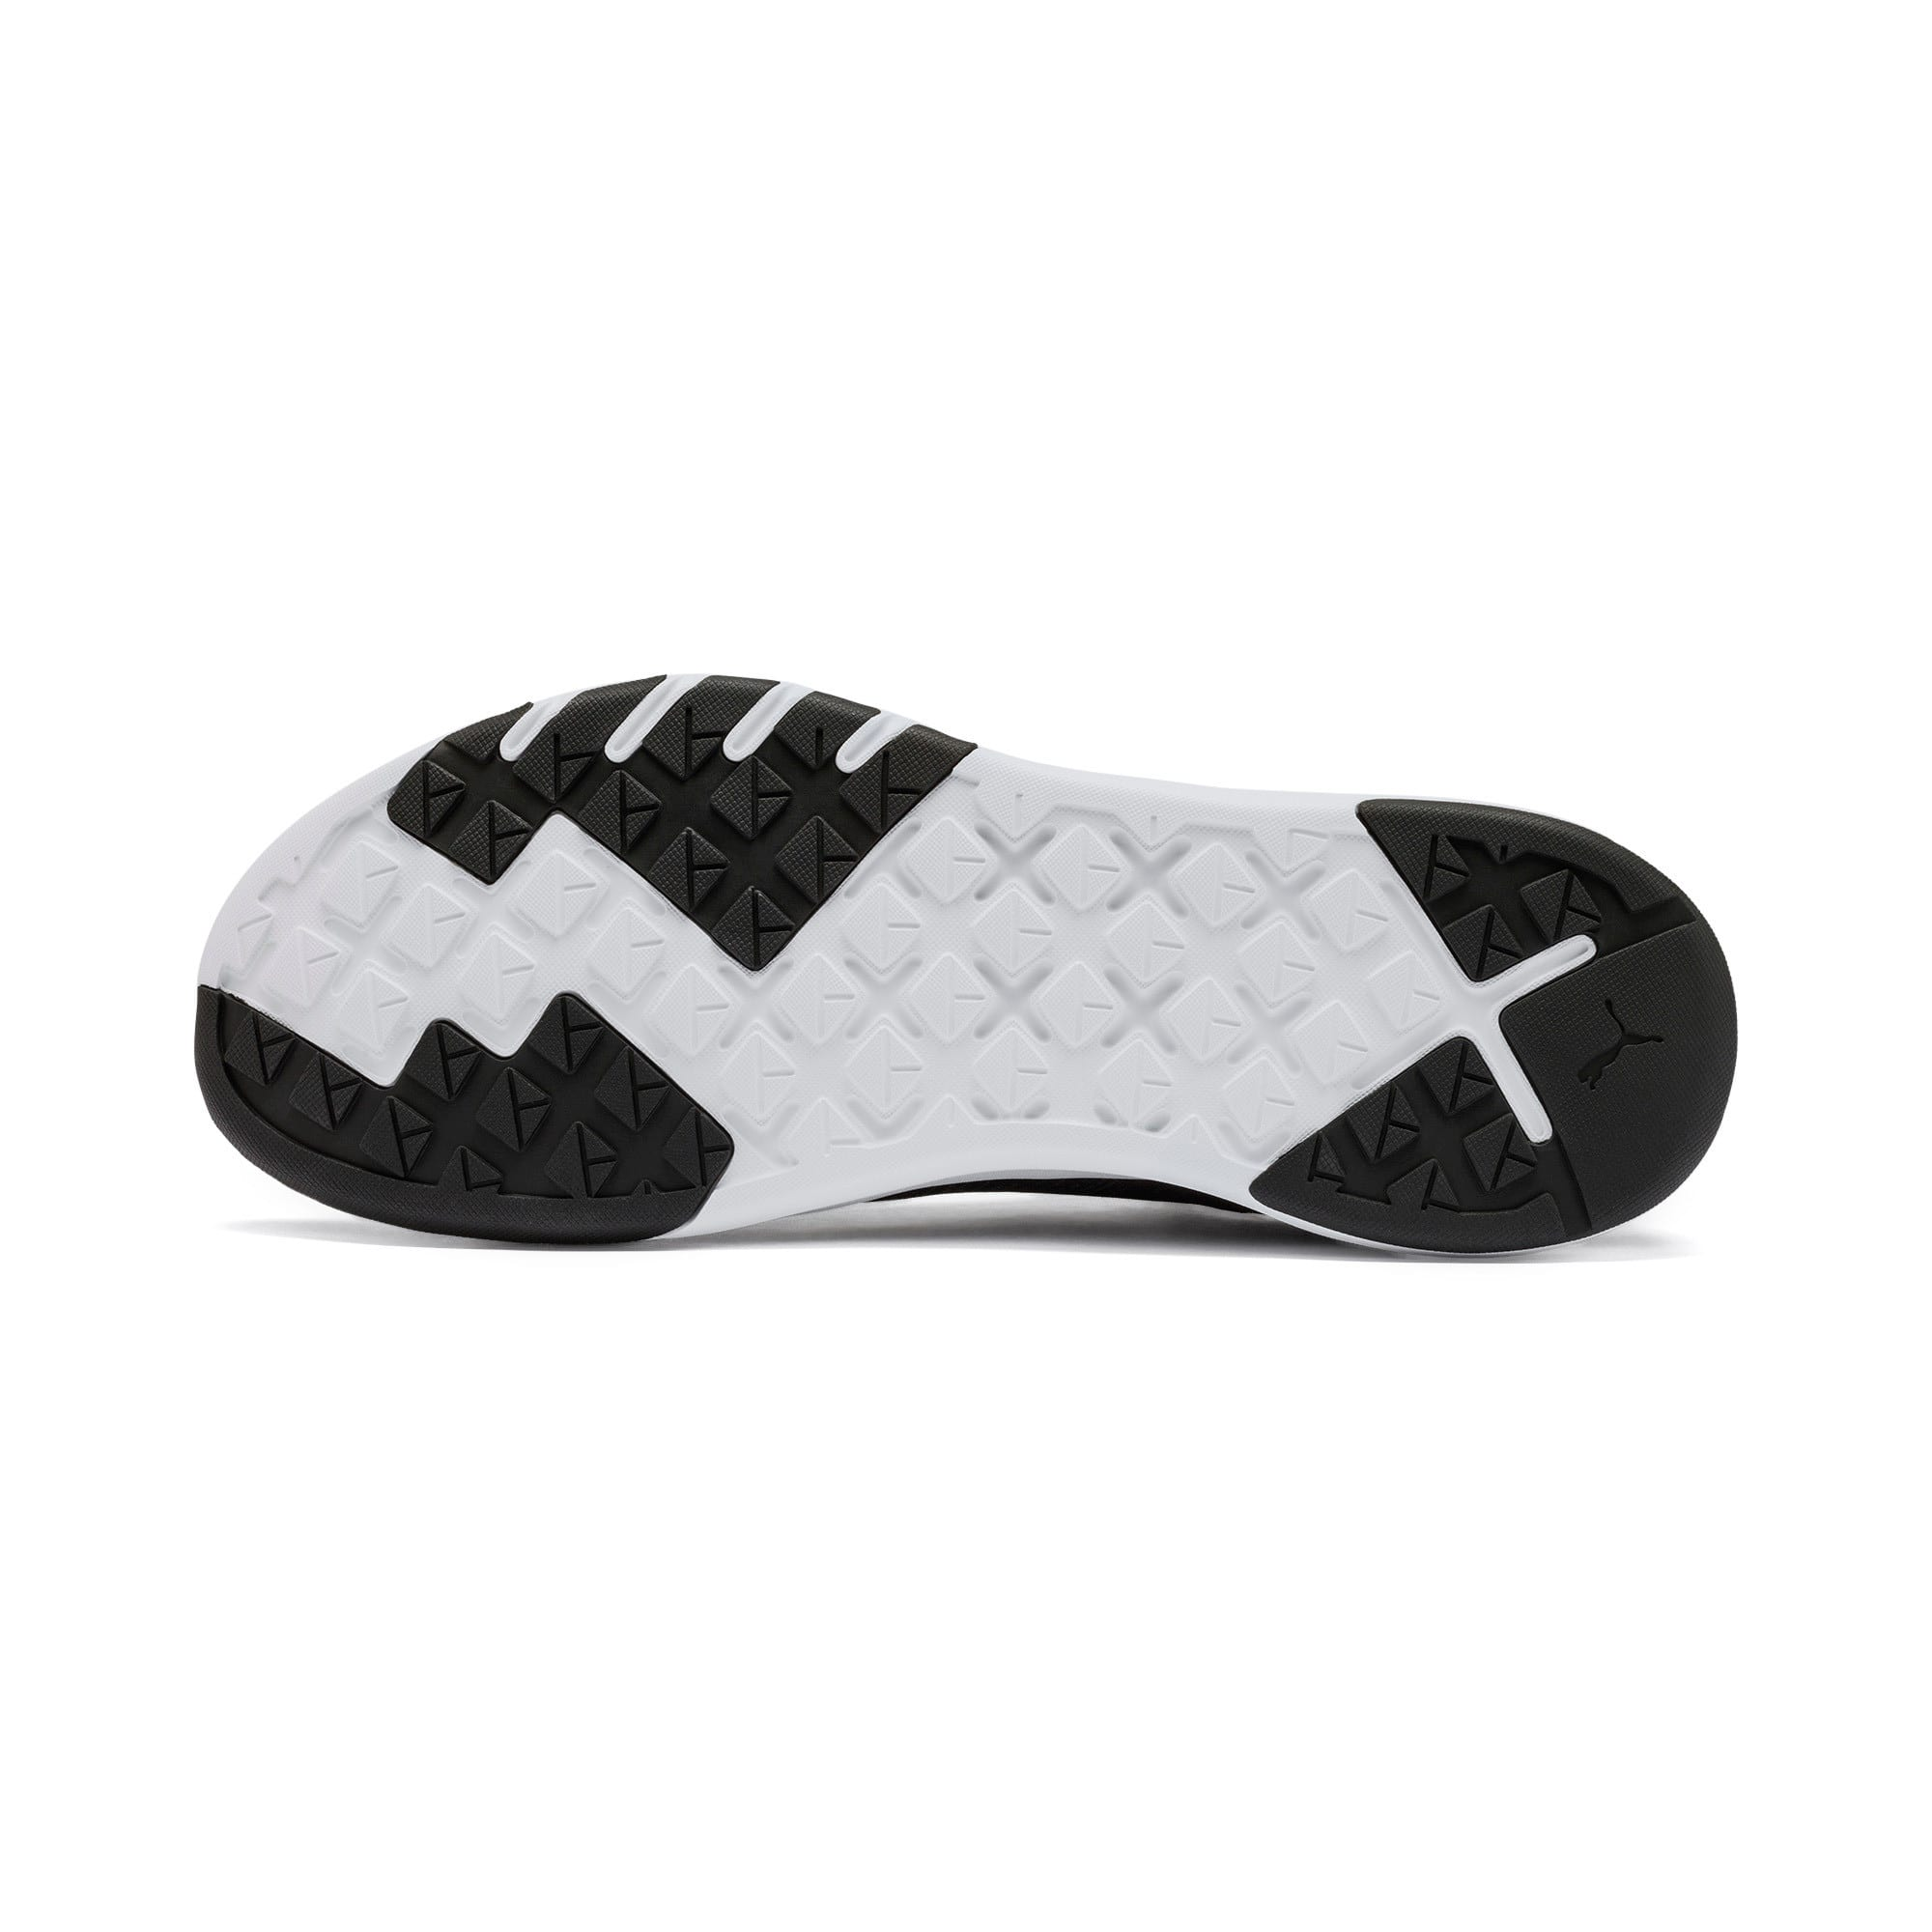 Thumbnail 6 of IGNITE Contender Knit Men's Running Shoes, Puma Black-Puma White, medium-IND